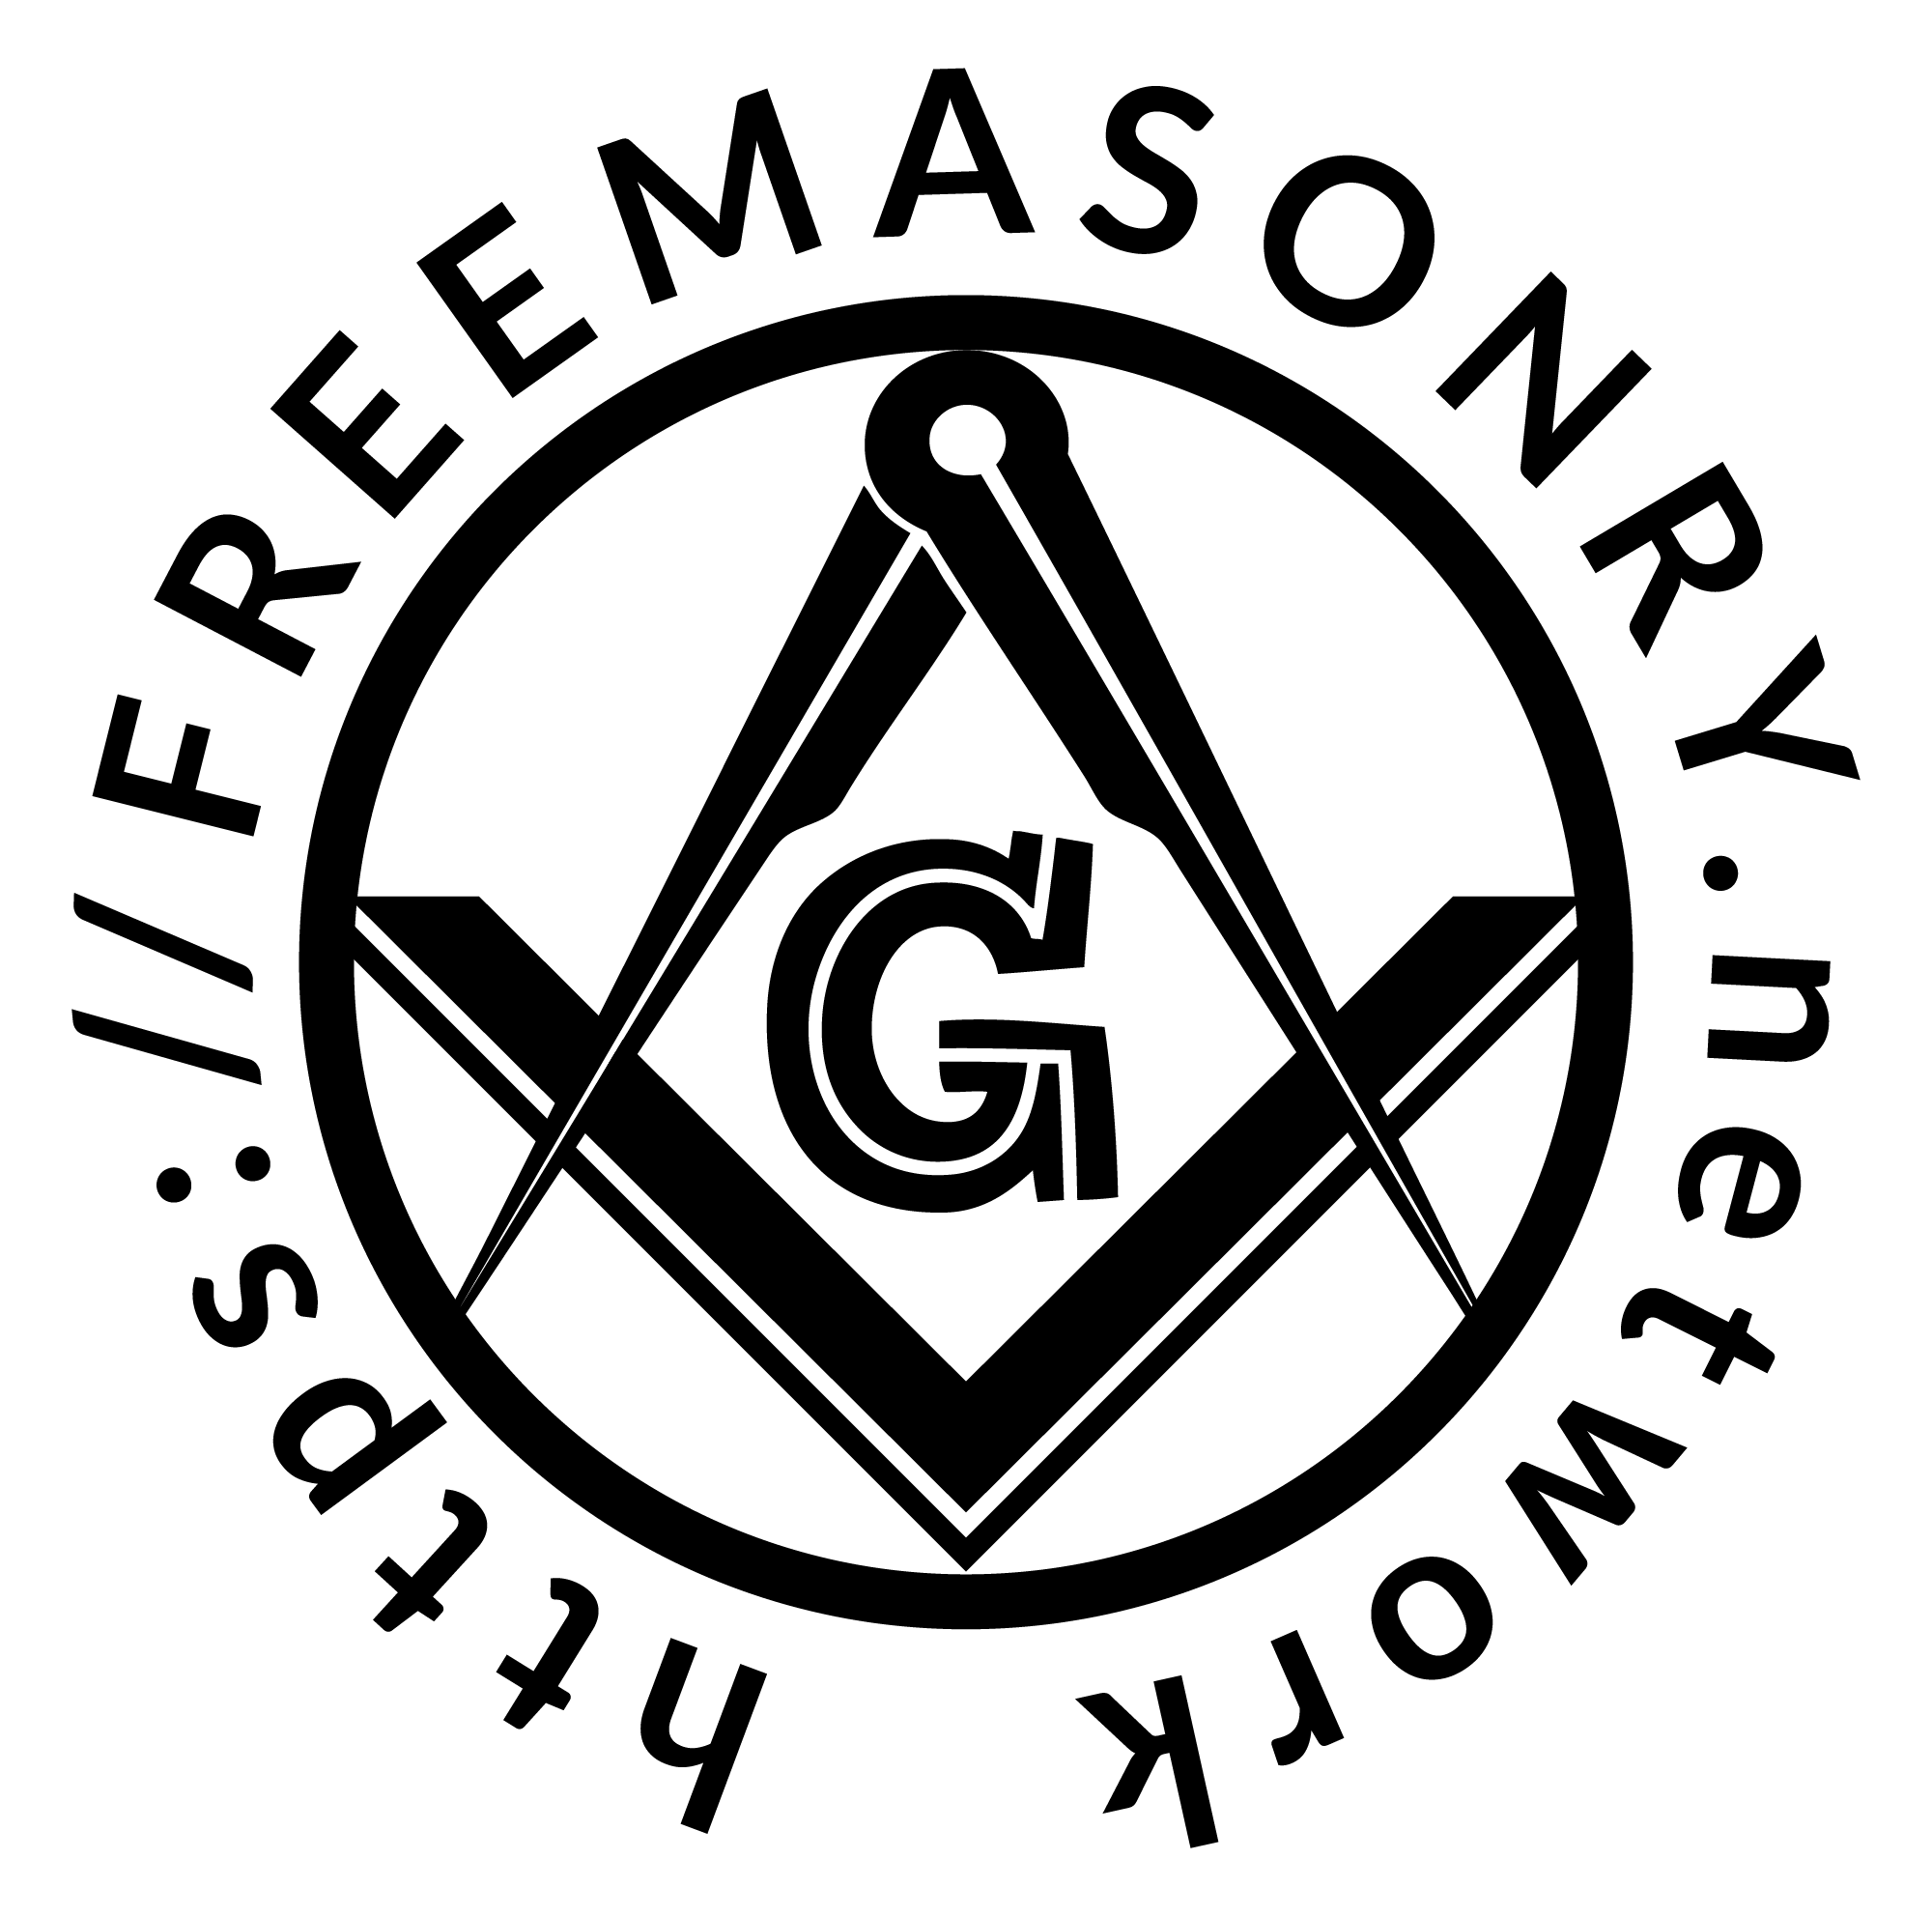 Is Masonry a Progressive Science?